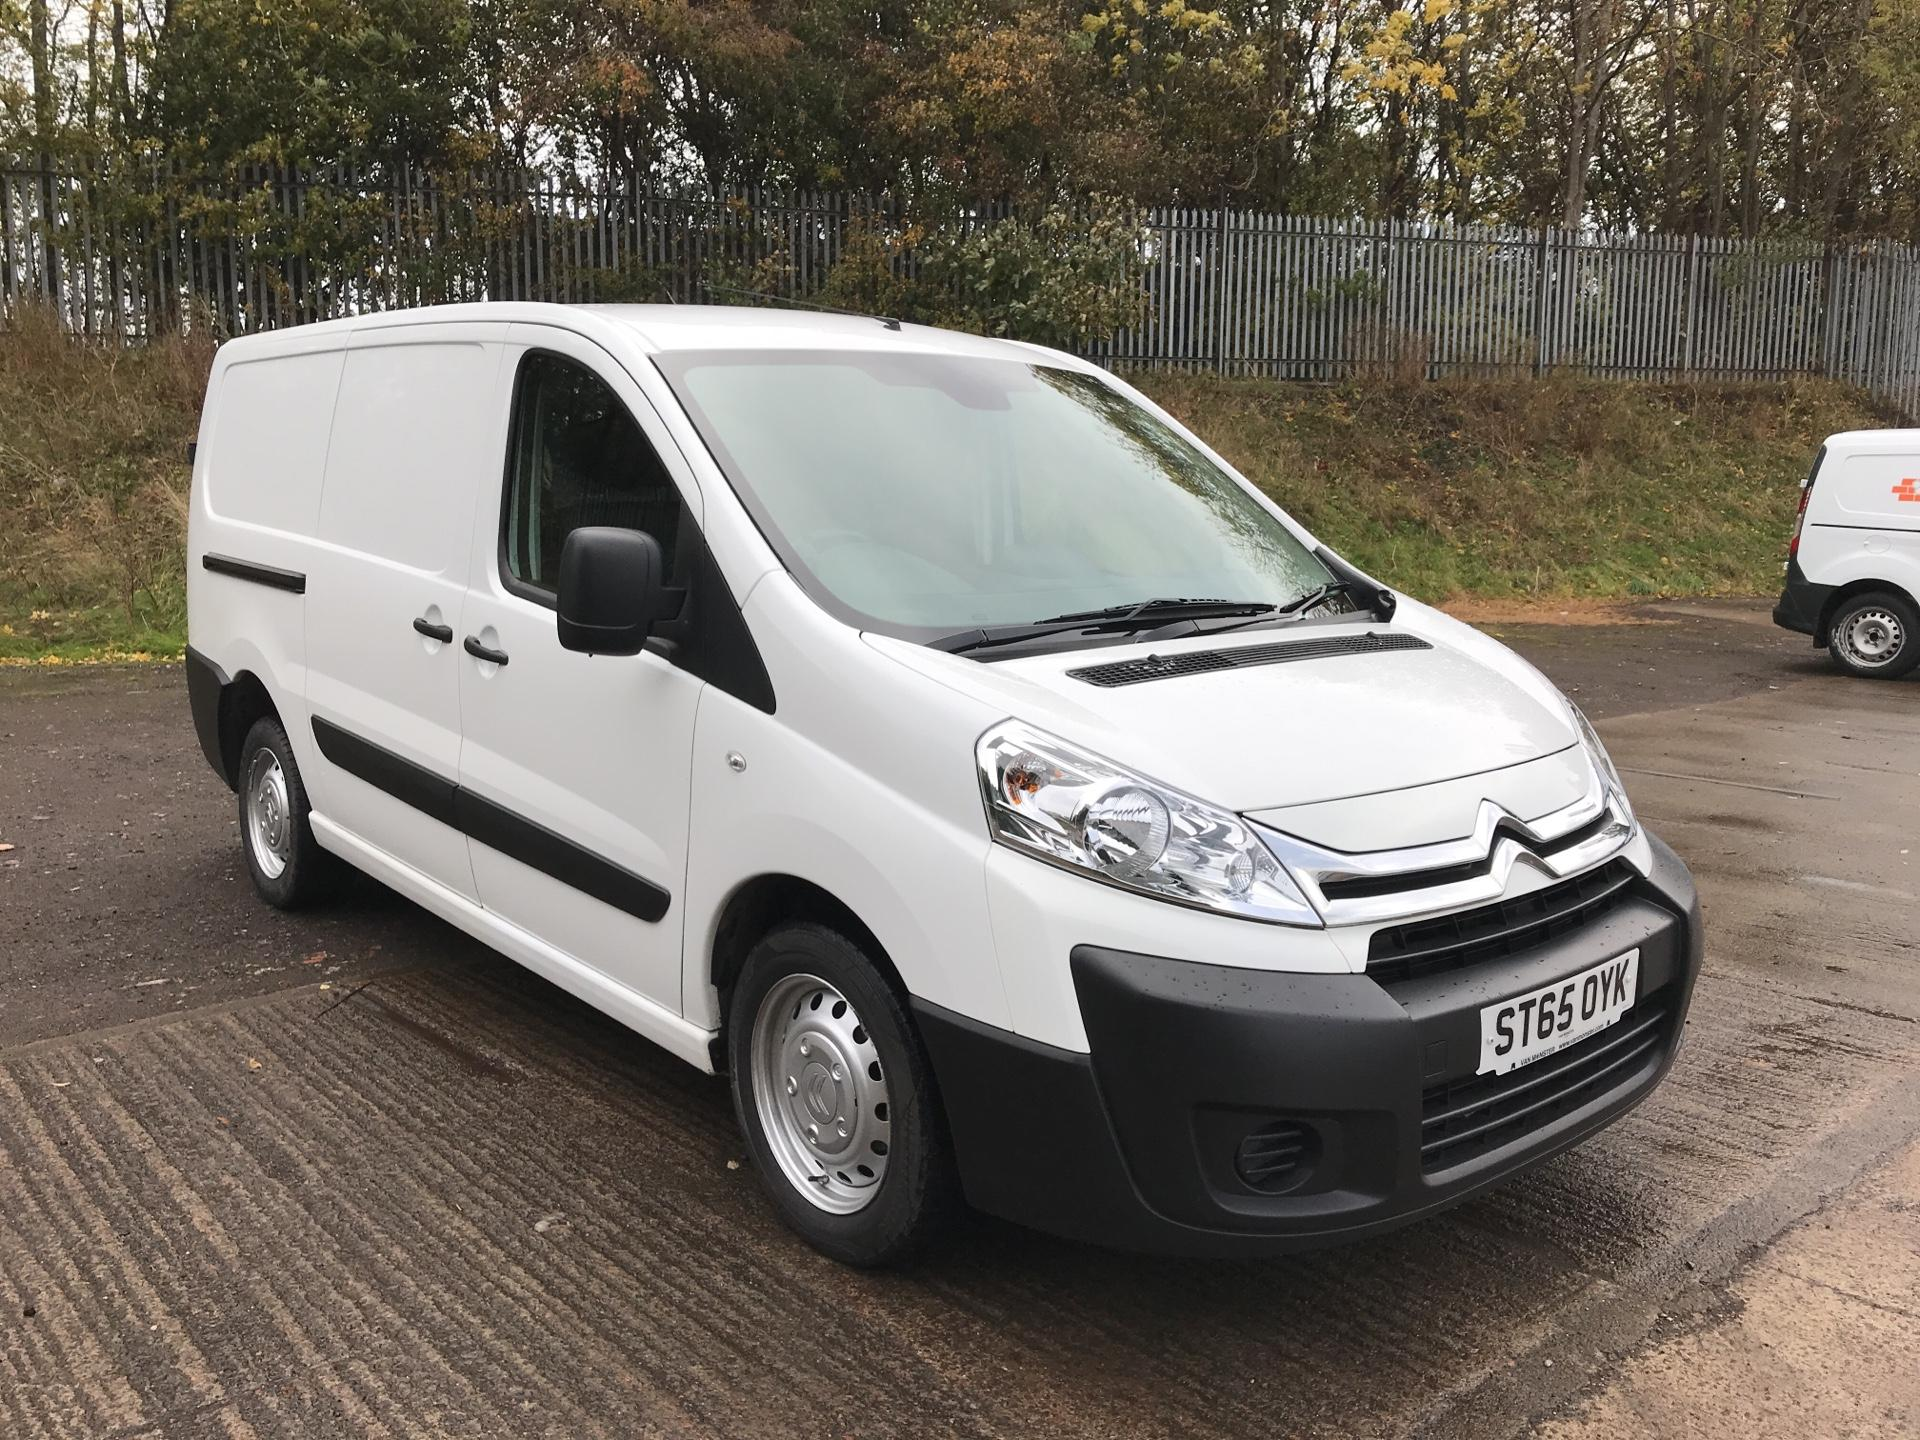 2015 Citroen Dispatch L2 DIESEL 1200 HDI 125PS H1 VAN ENTERPRISE EURO 5 (ST65OYK) Image 1